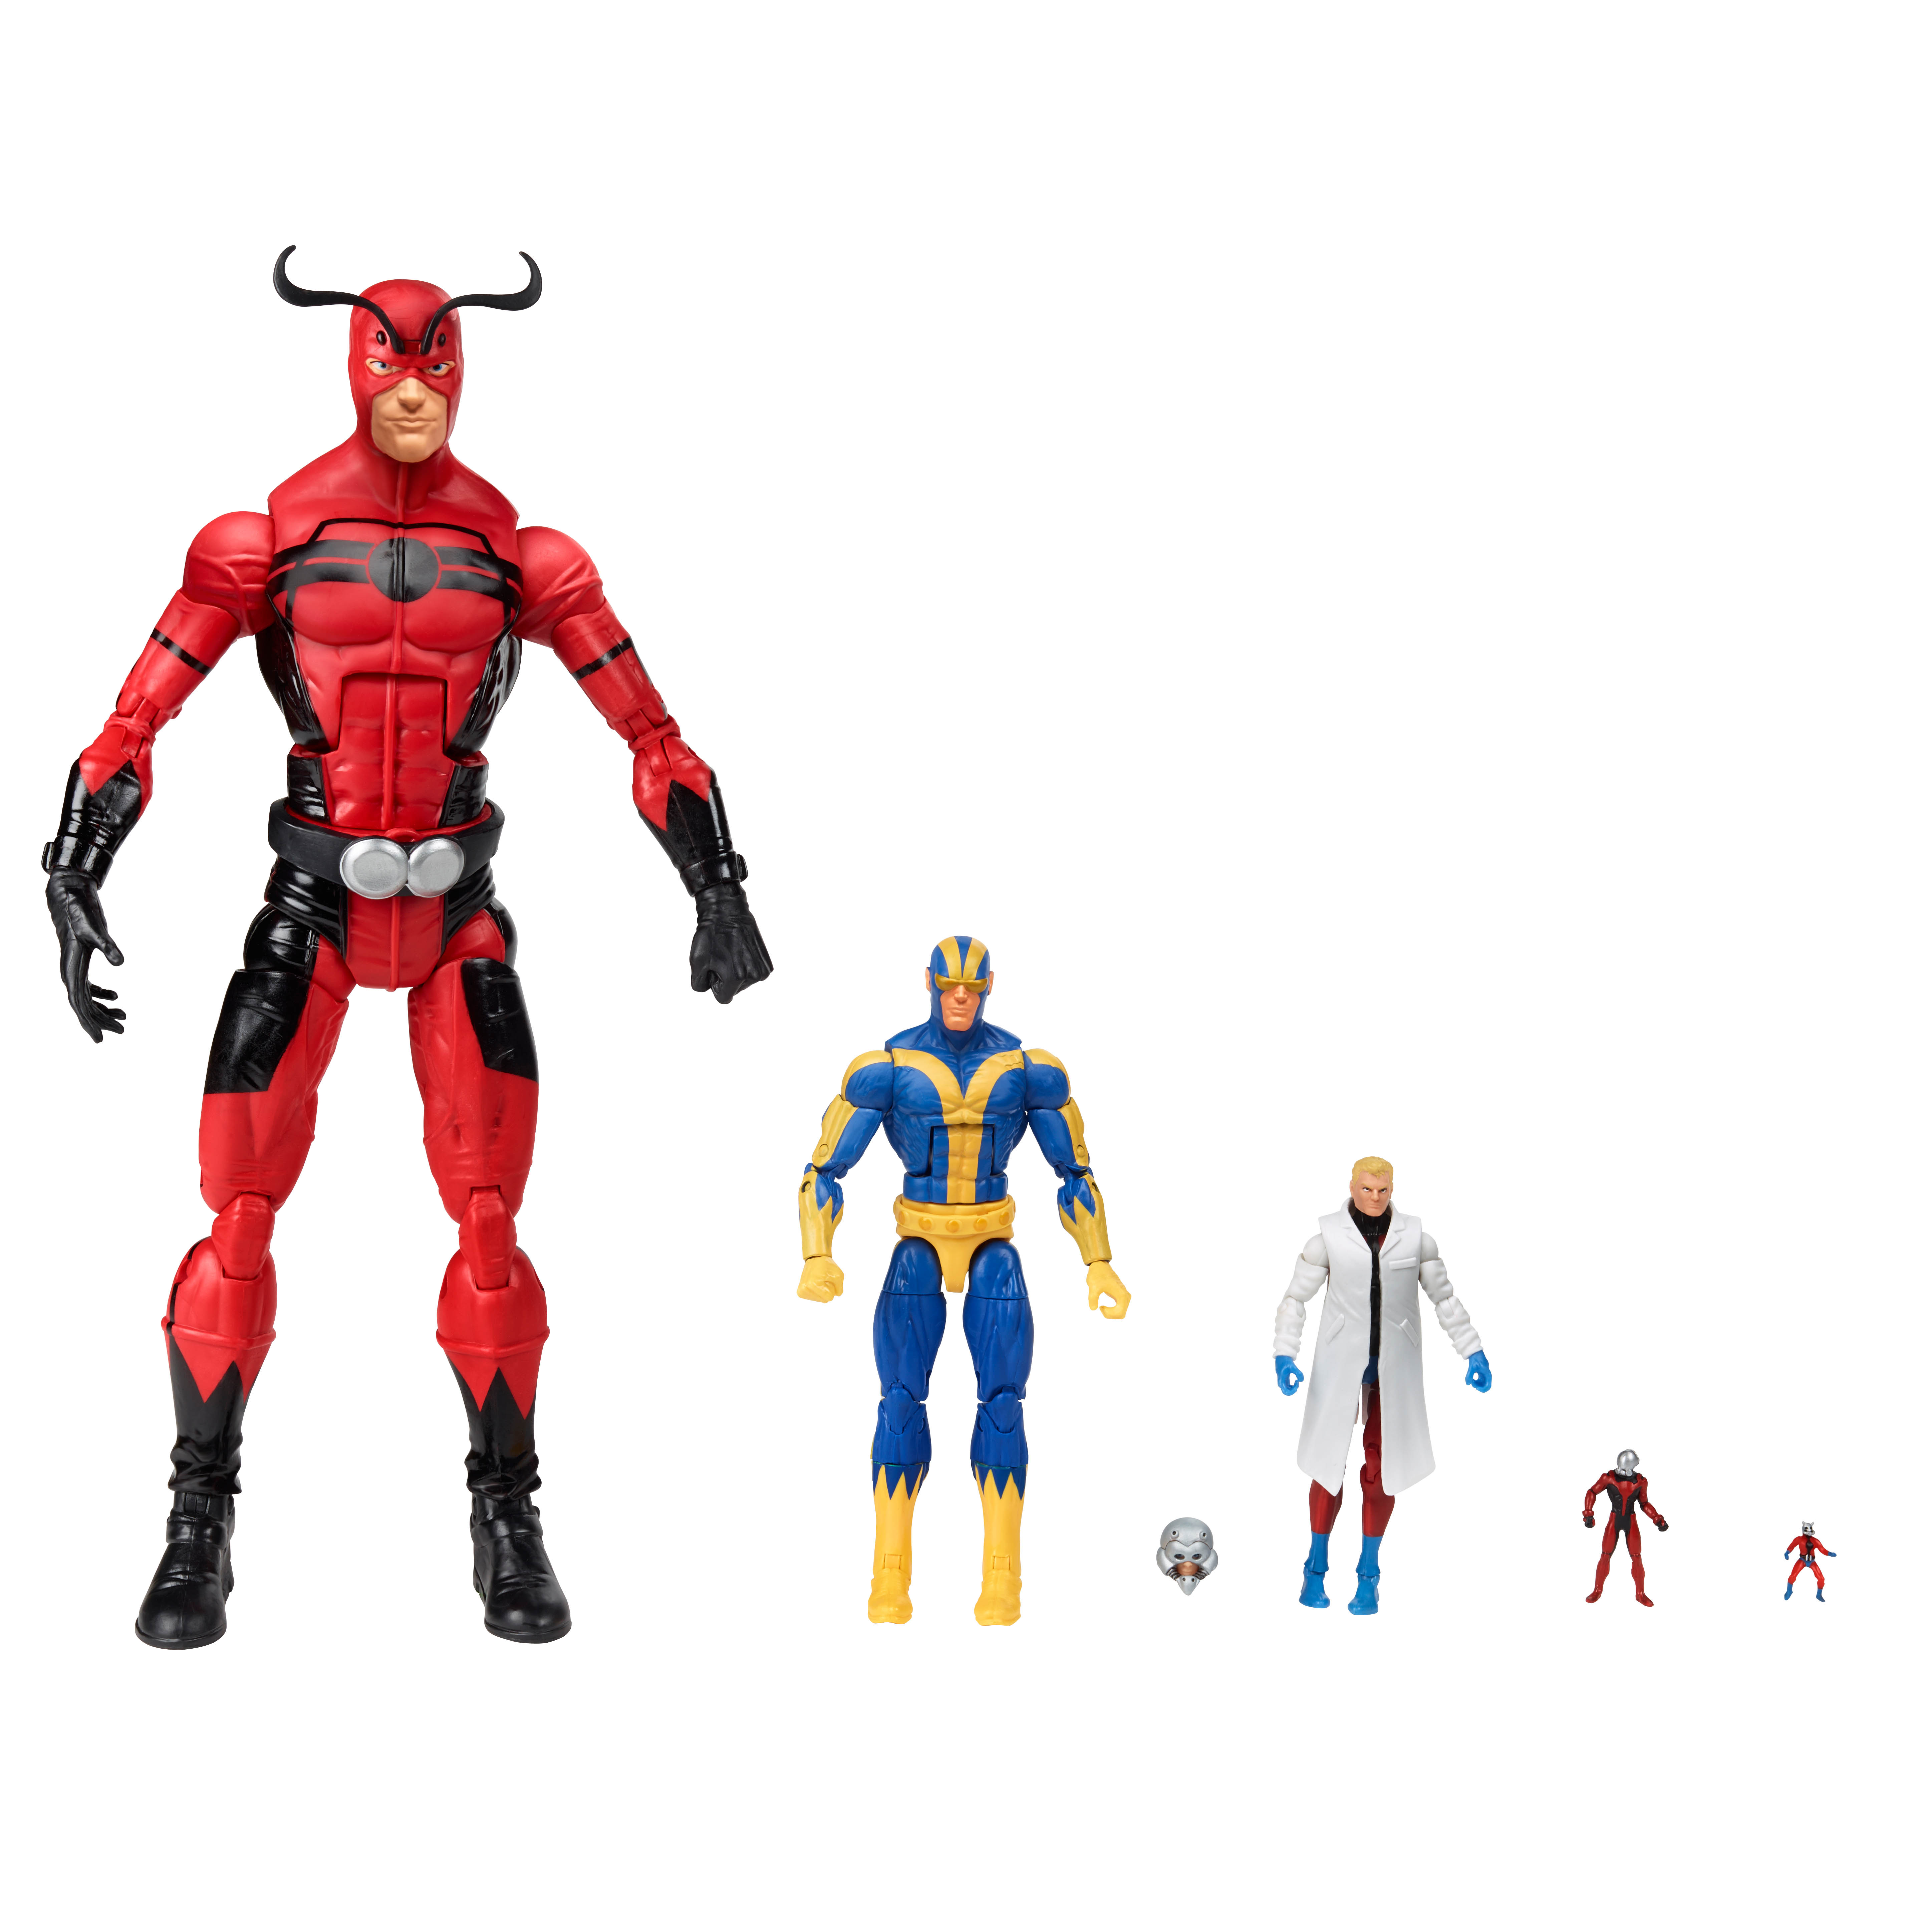 1:18 action figure archive : Marvel Infinite Series checklist